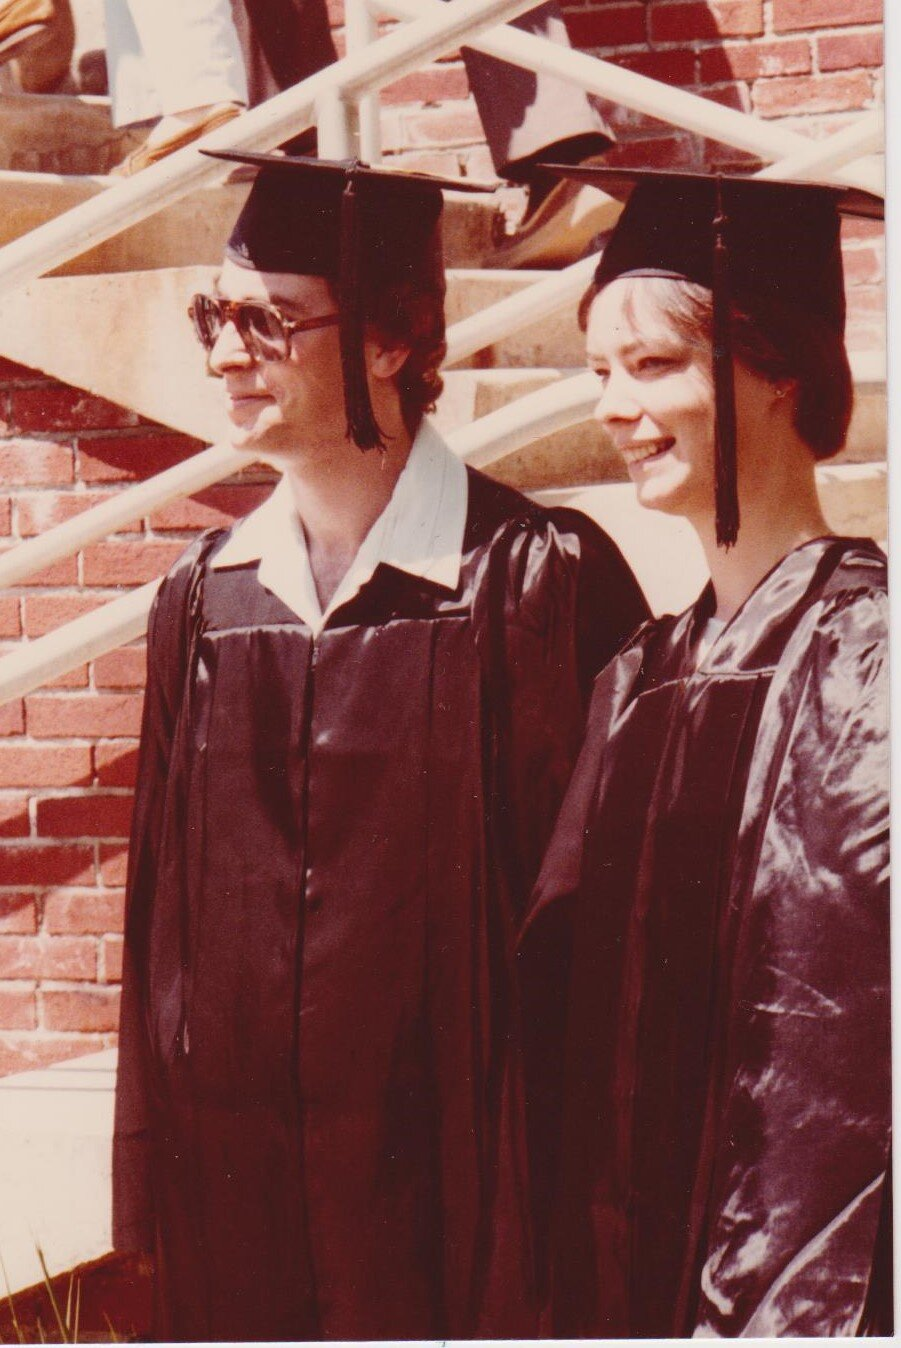 May 1980, engaged and graduating from college.